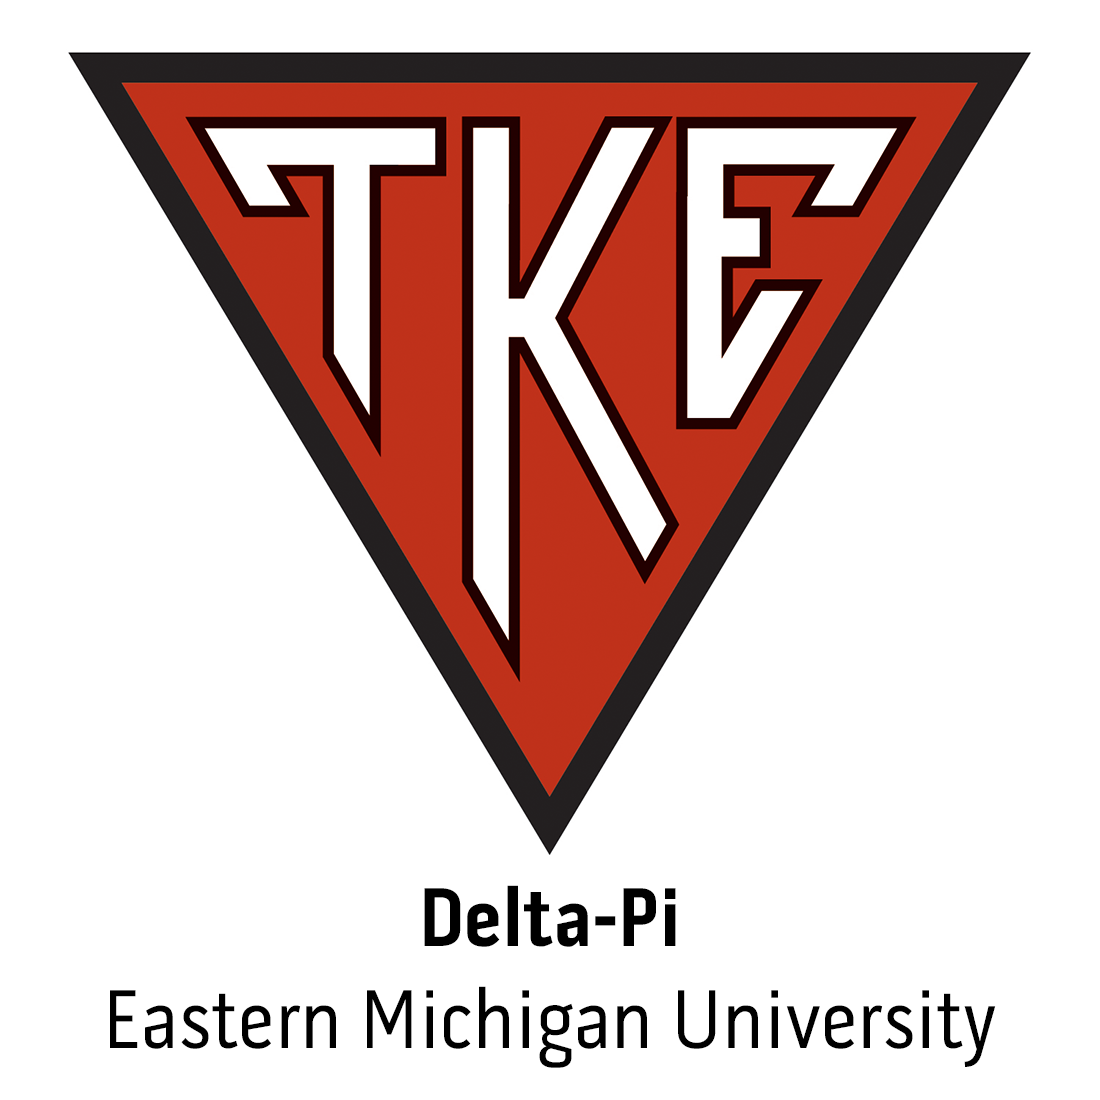 Delta-Pi Chapter at Eastern Michigan University